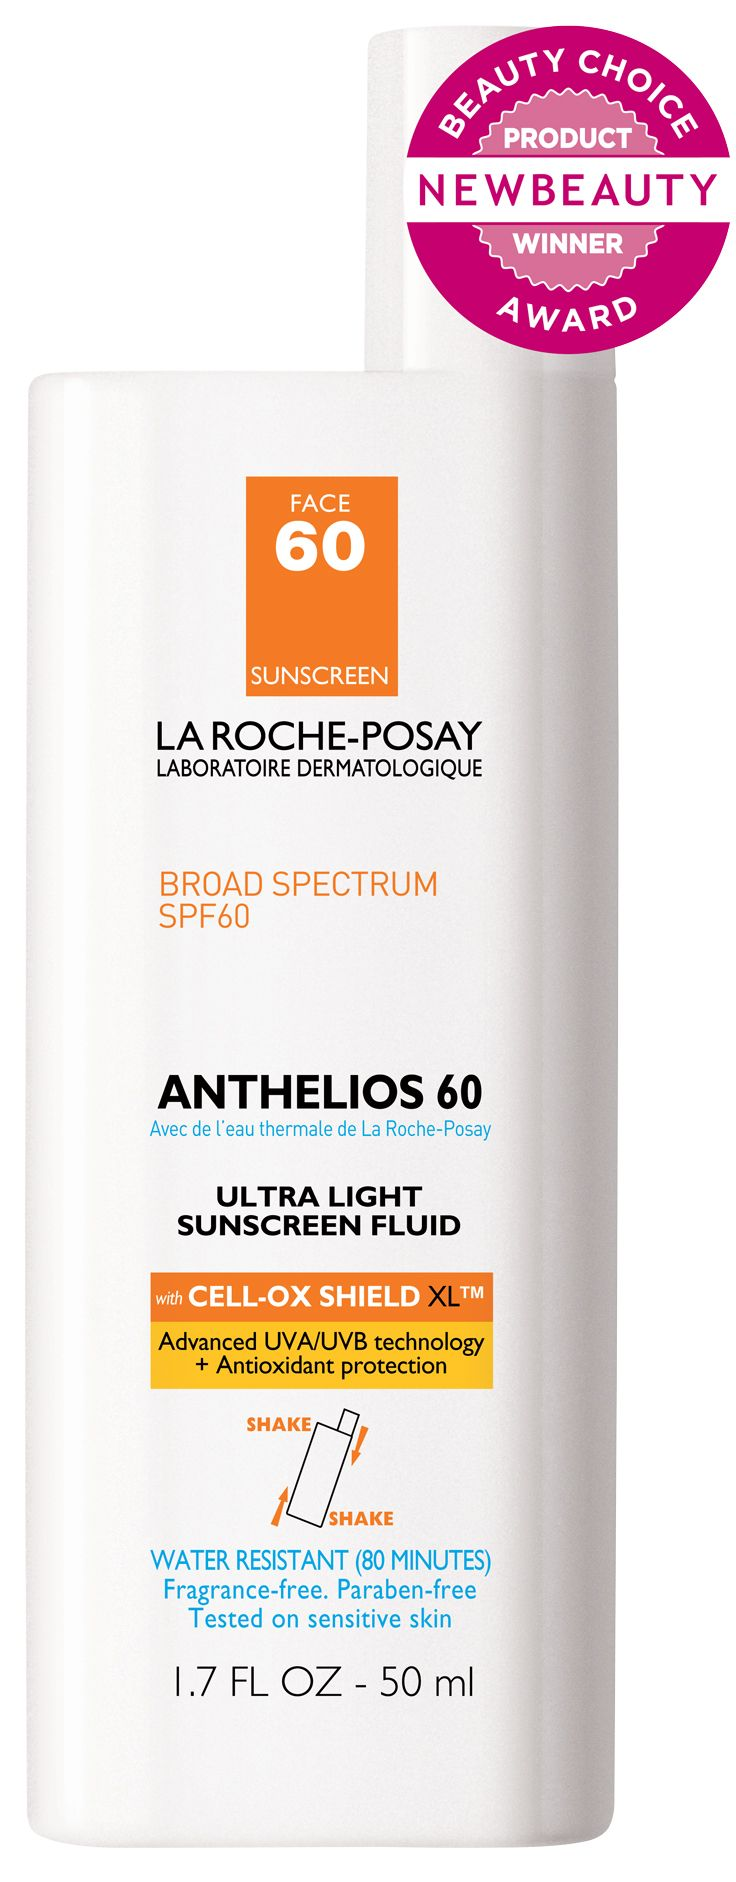 LaRoche-Posay's fast absorbing, water-resistant, matte finish Anthelios 60 Ultra Light Sunscreen Fluid won the Beauty Choice Award for the Best Sunscreen to Wear Under Makeup - $29.99